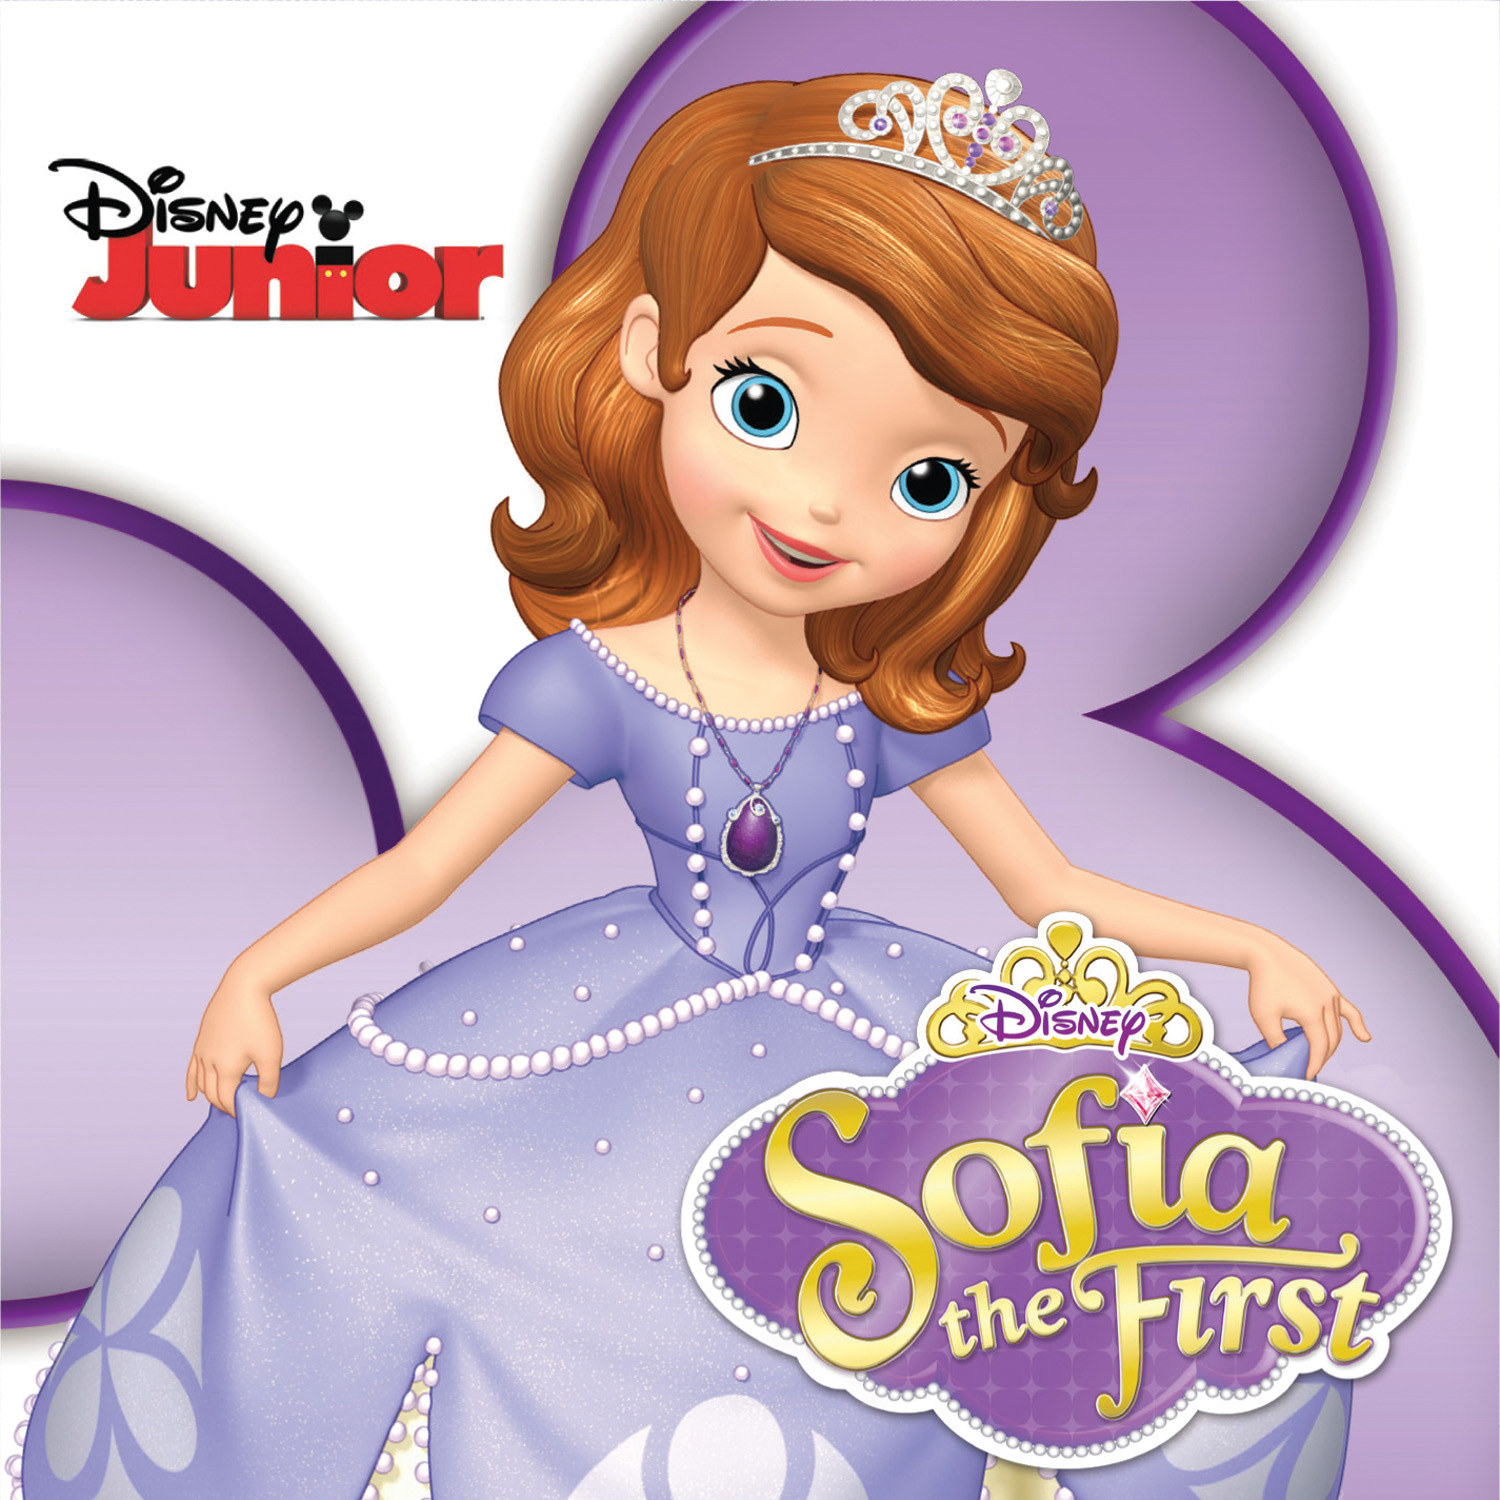 Sofia The First Soundtrack Disney Wiki Fandom Powered By Wikia